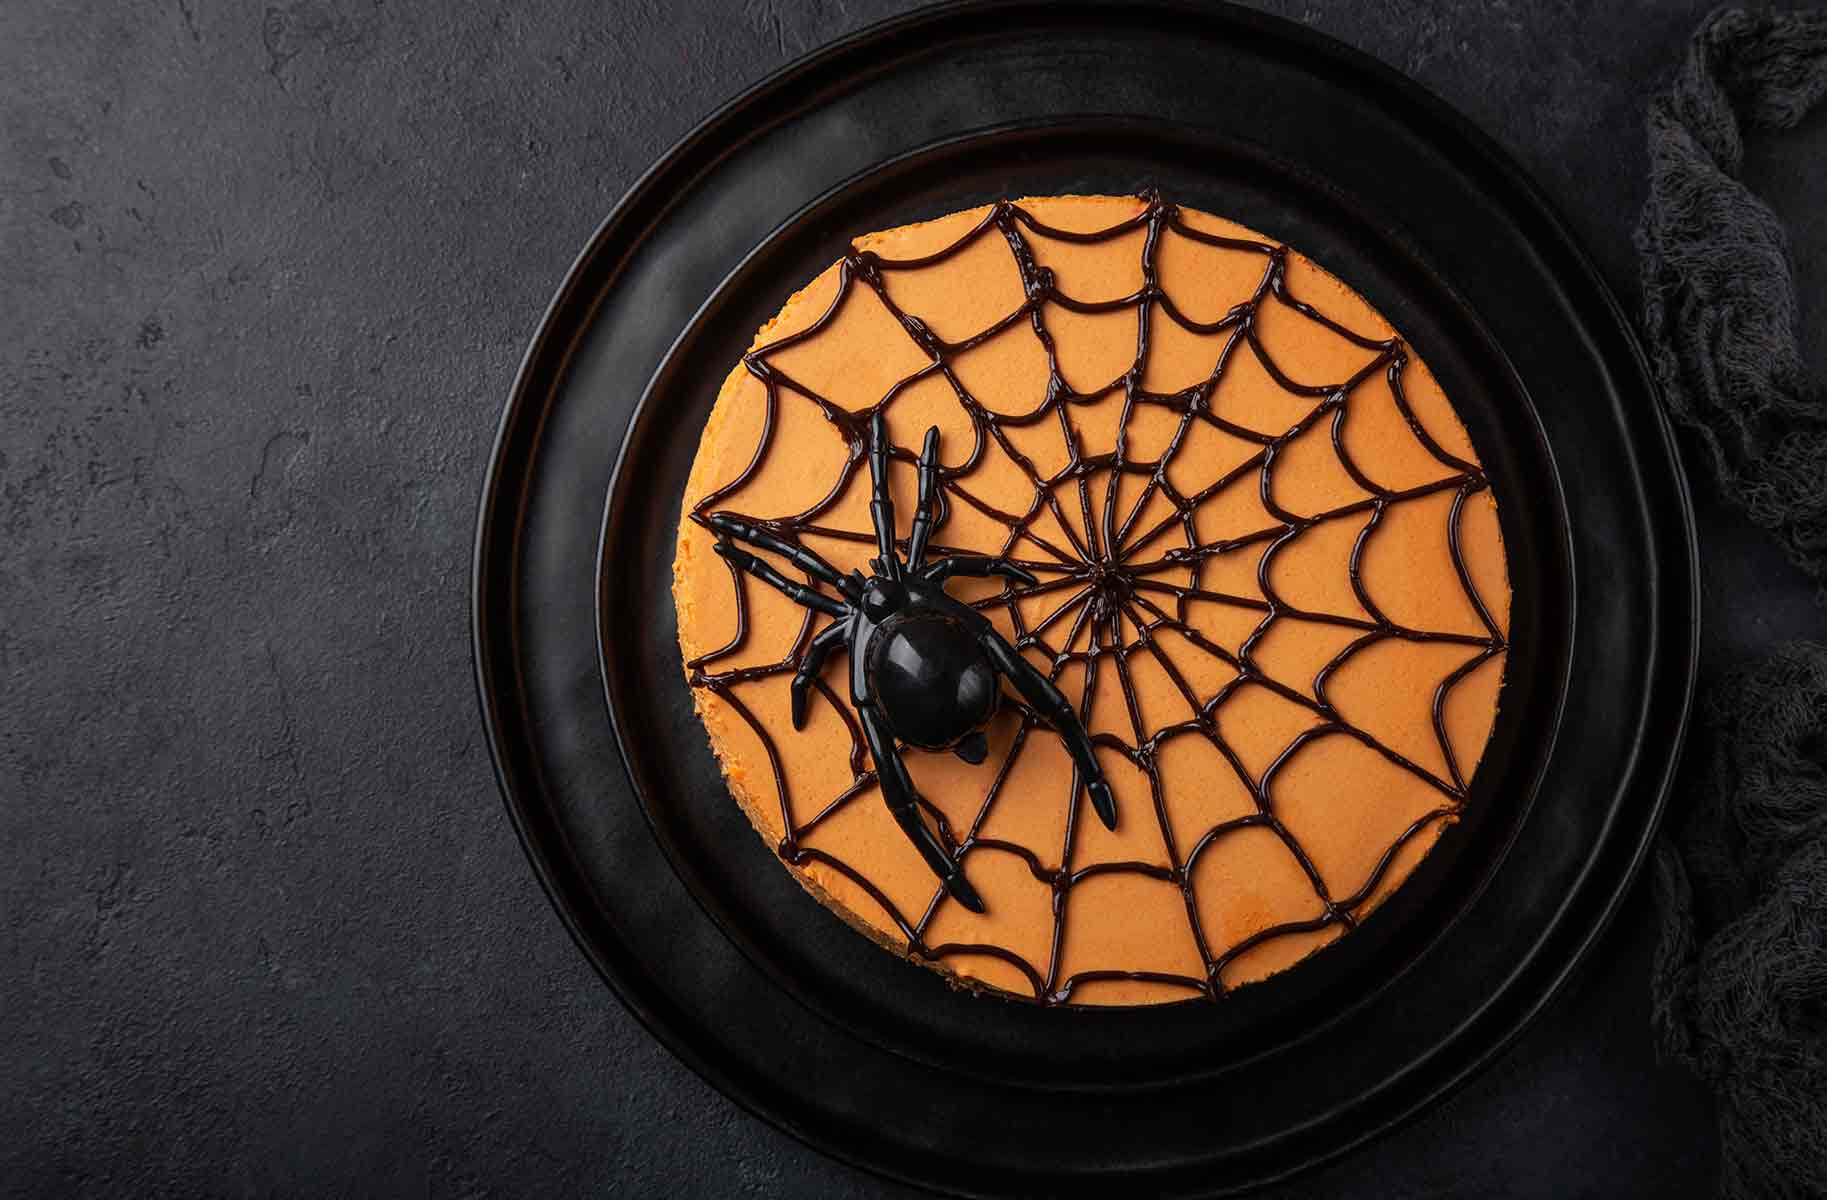 il gigante centri commerciali cheesecake halloween